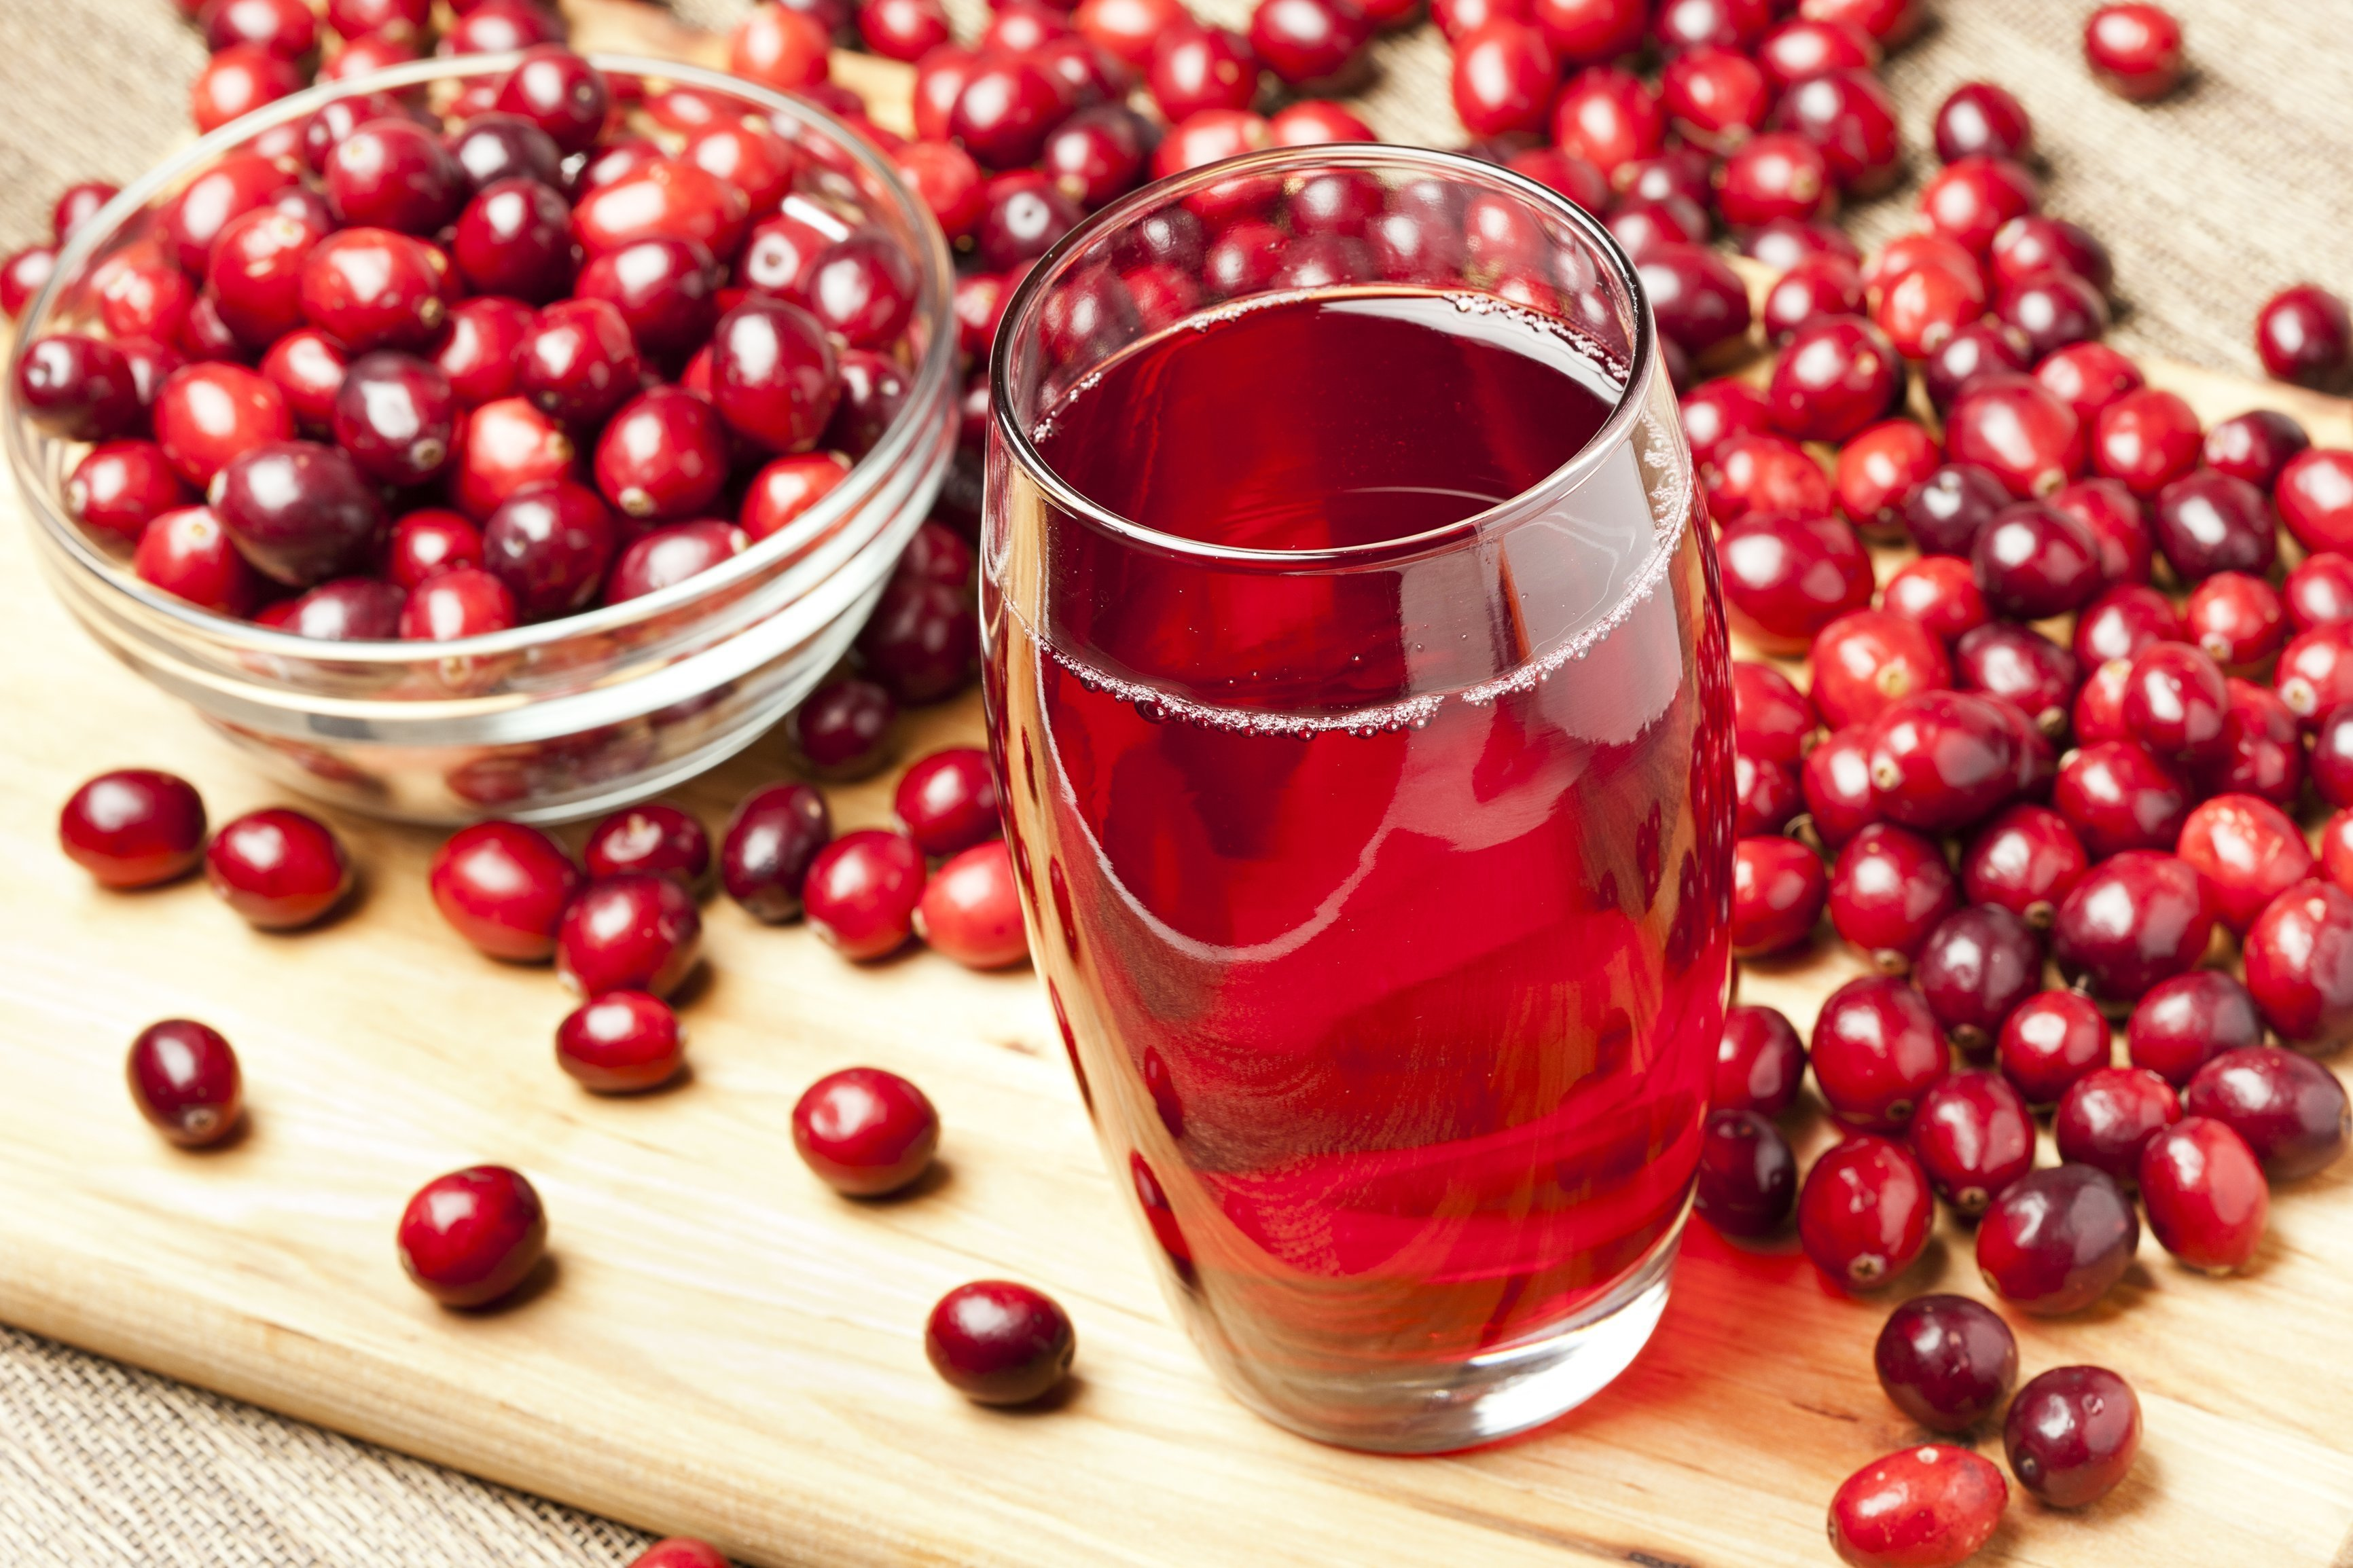 Benefits of Cranberry